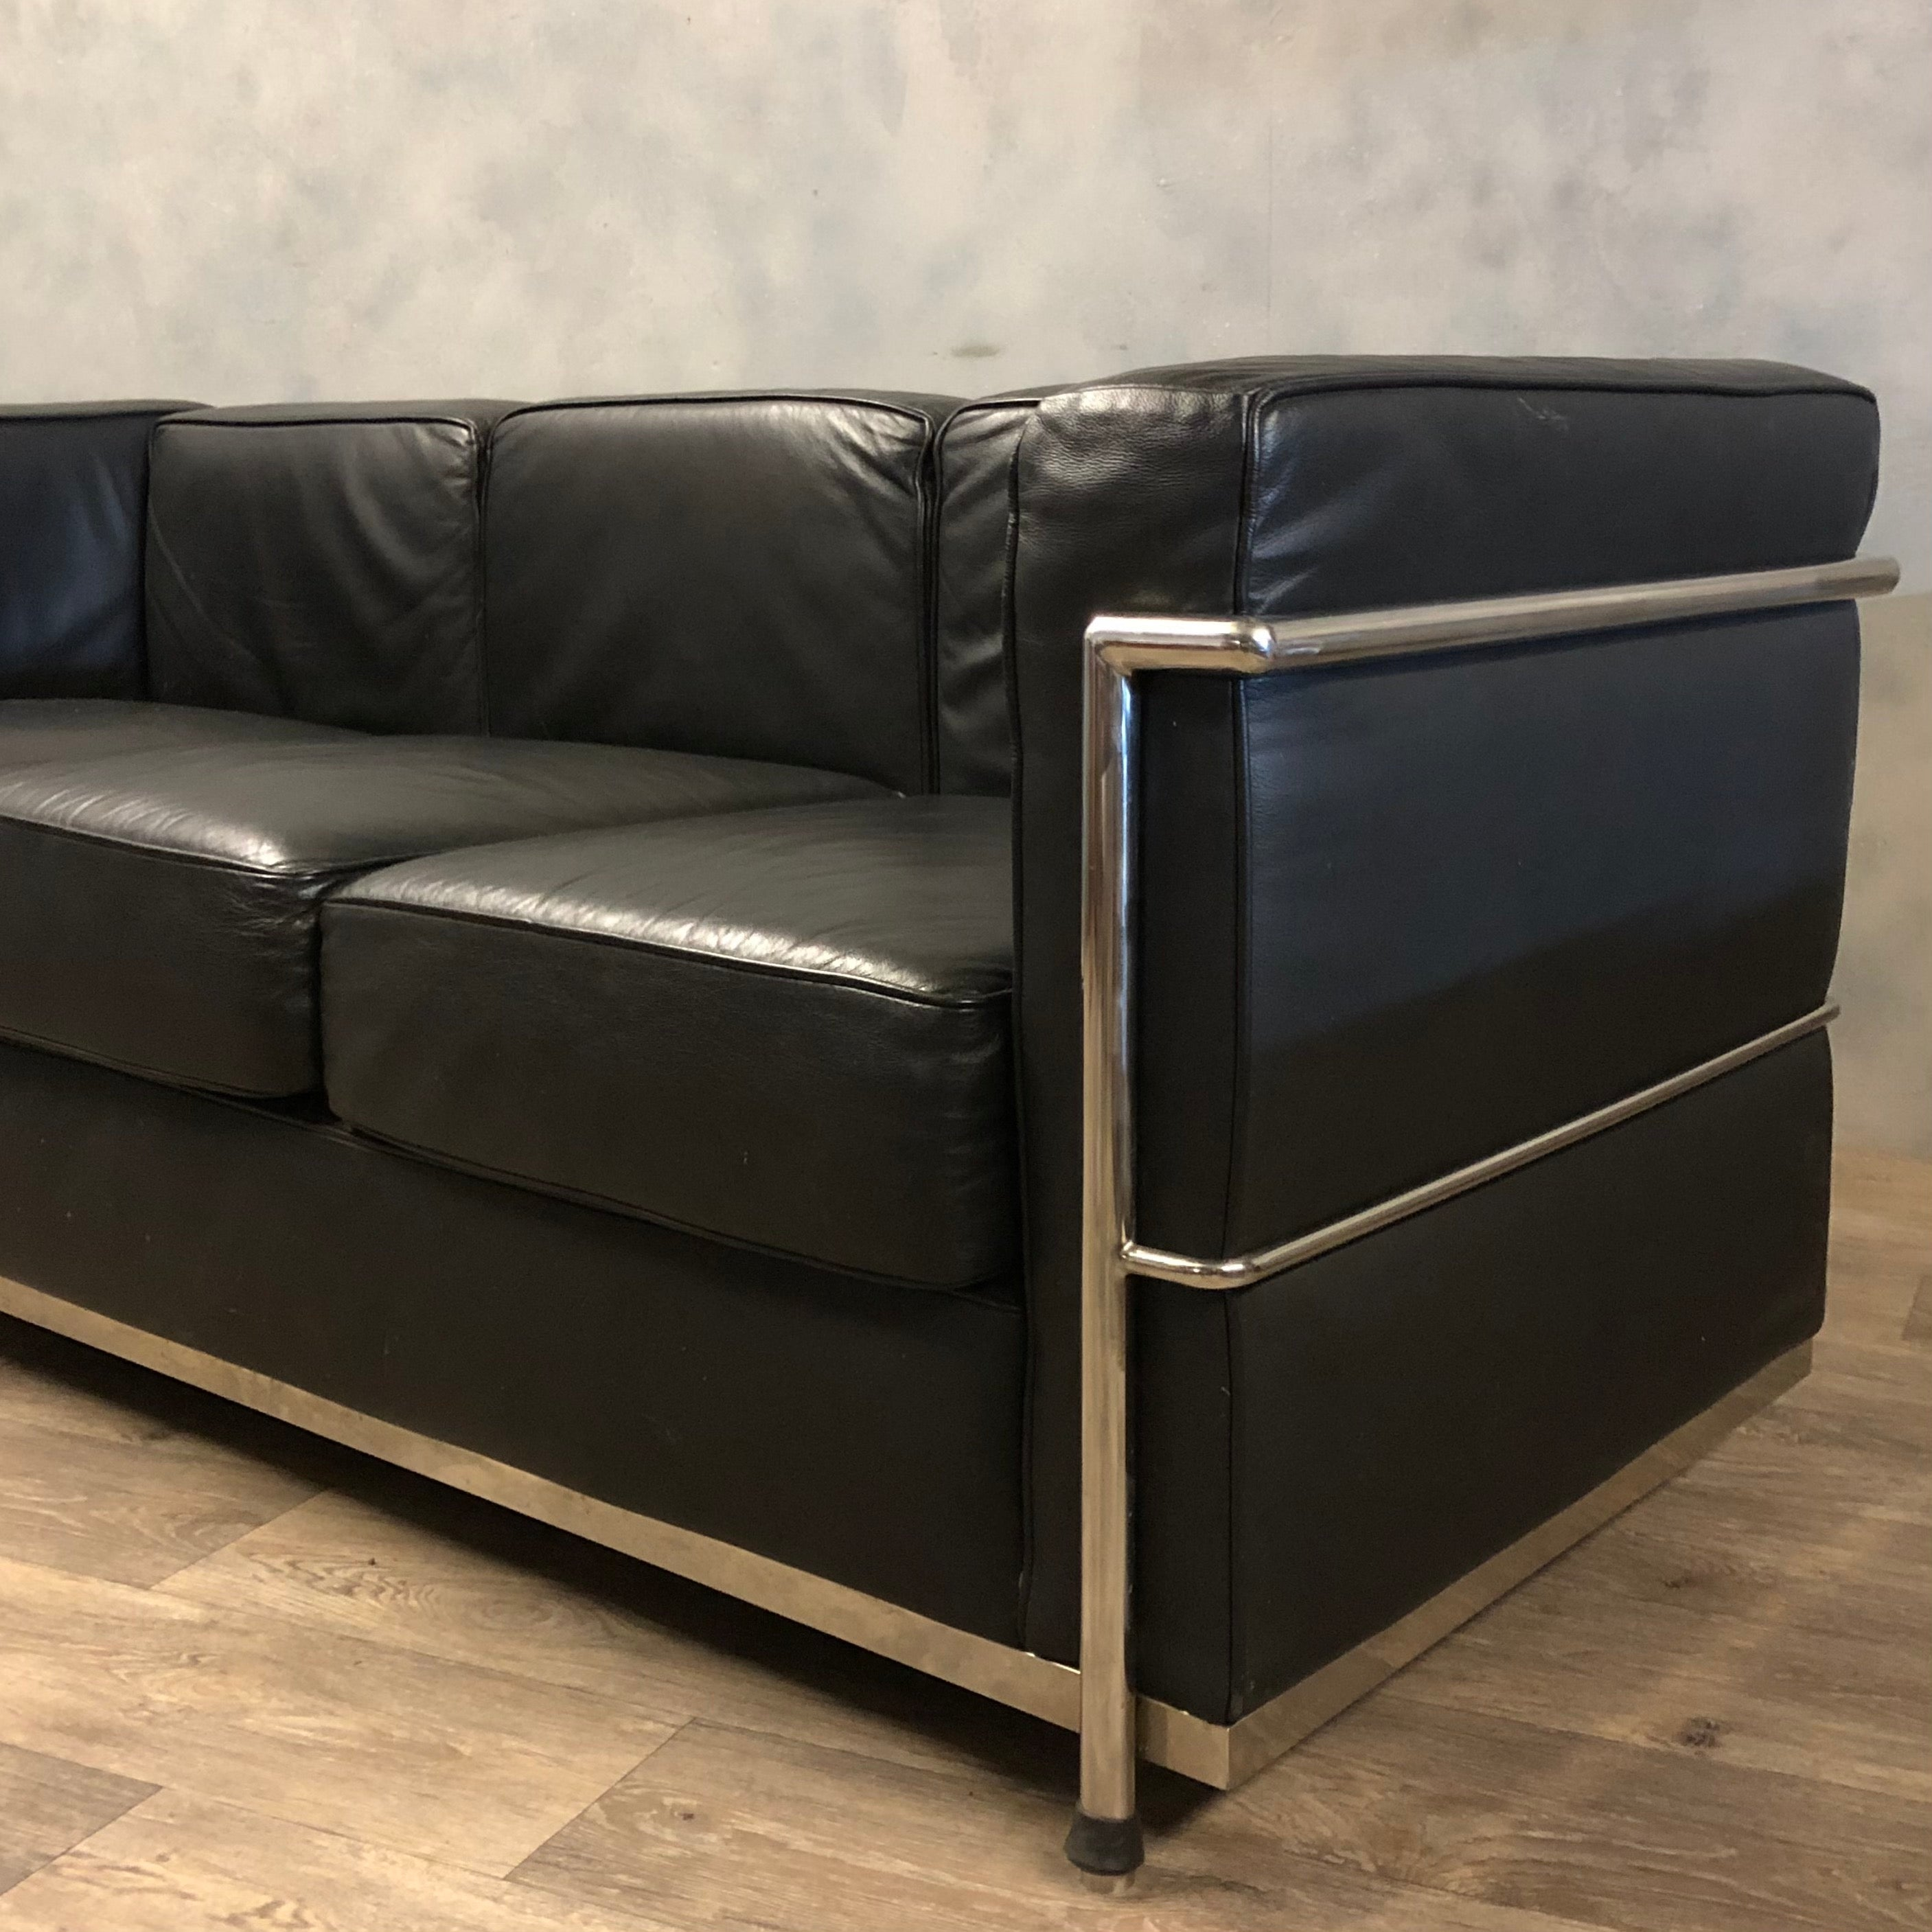 Chrome and leather vintage sofa